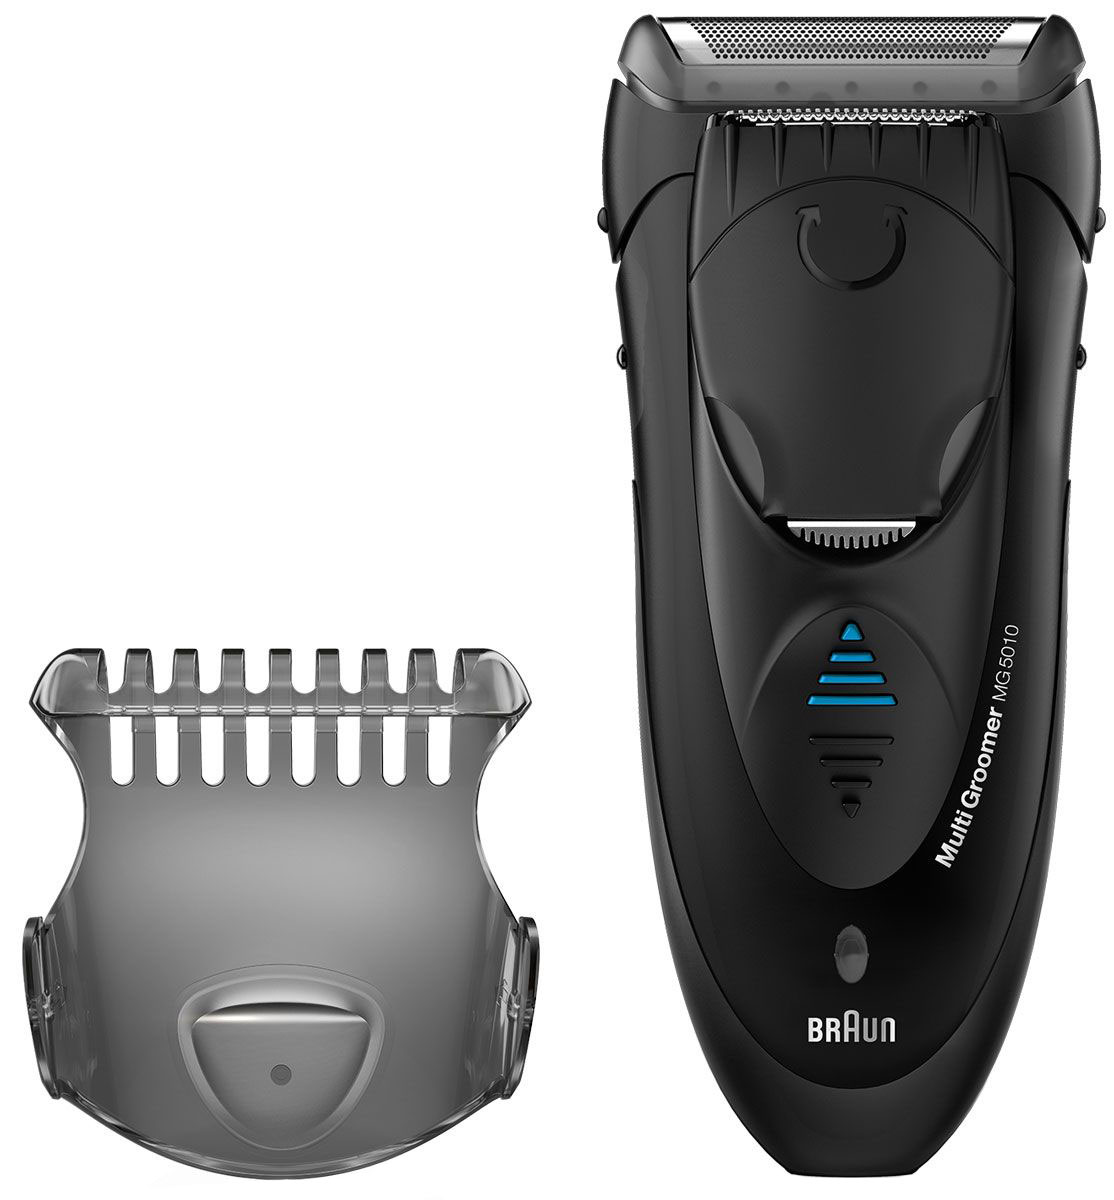 Braun MG 5010 Wet & Dry электробритва